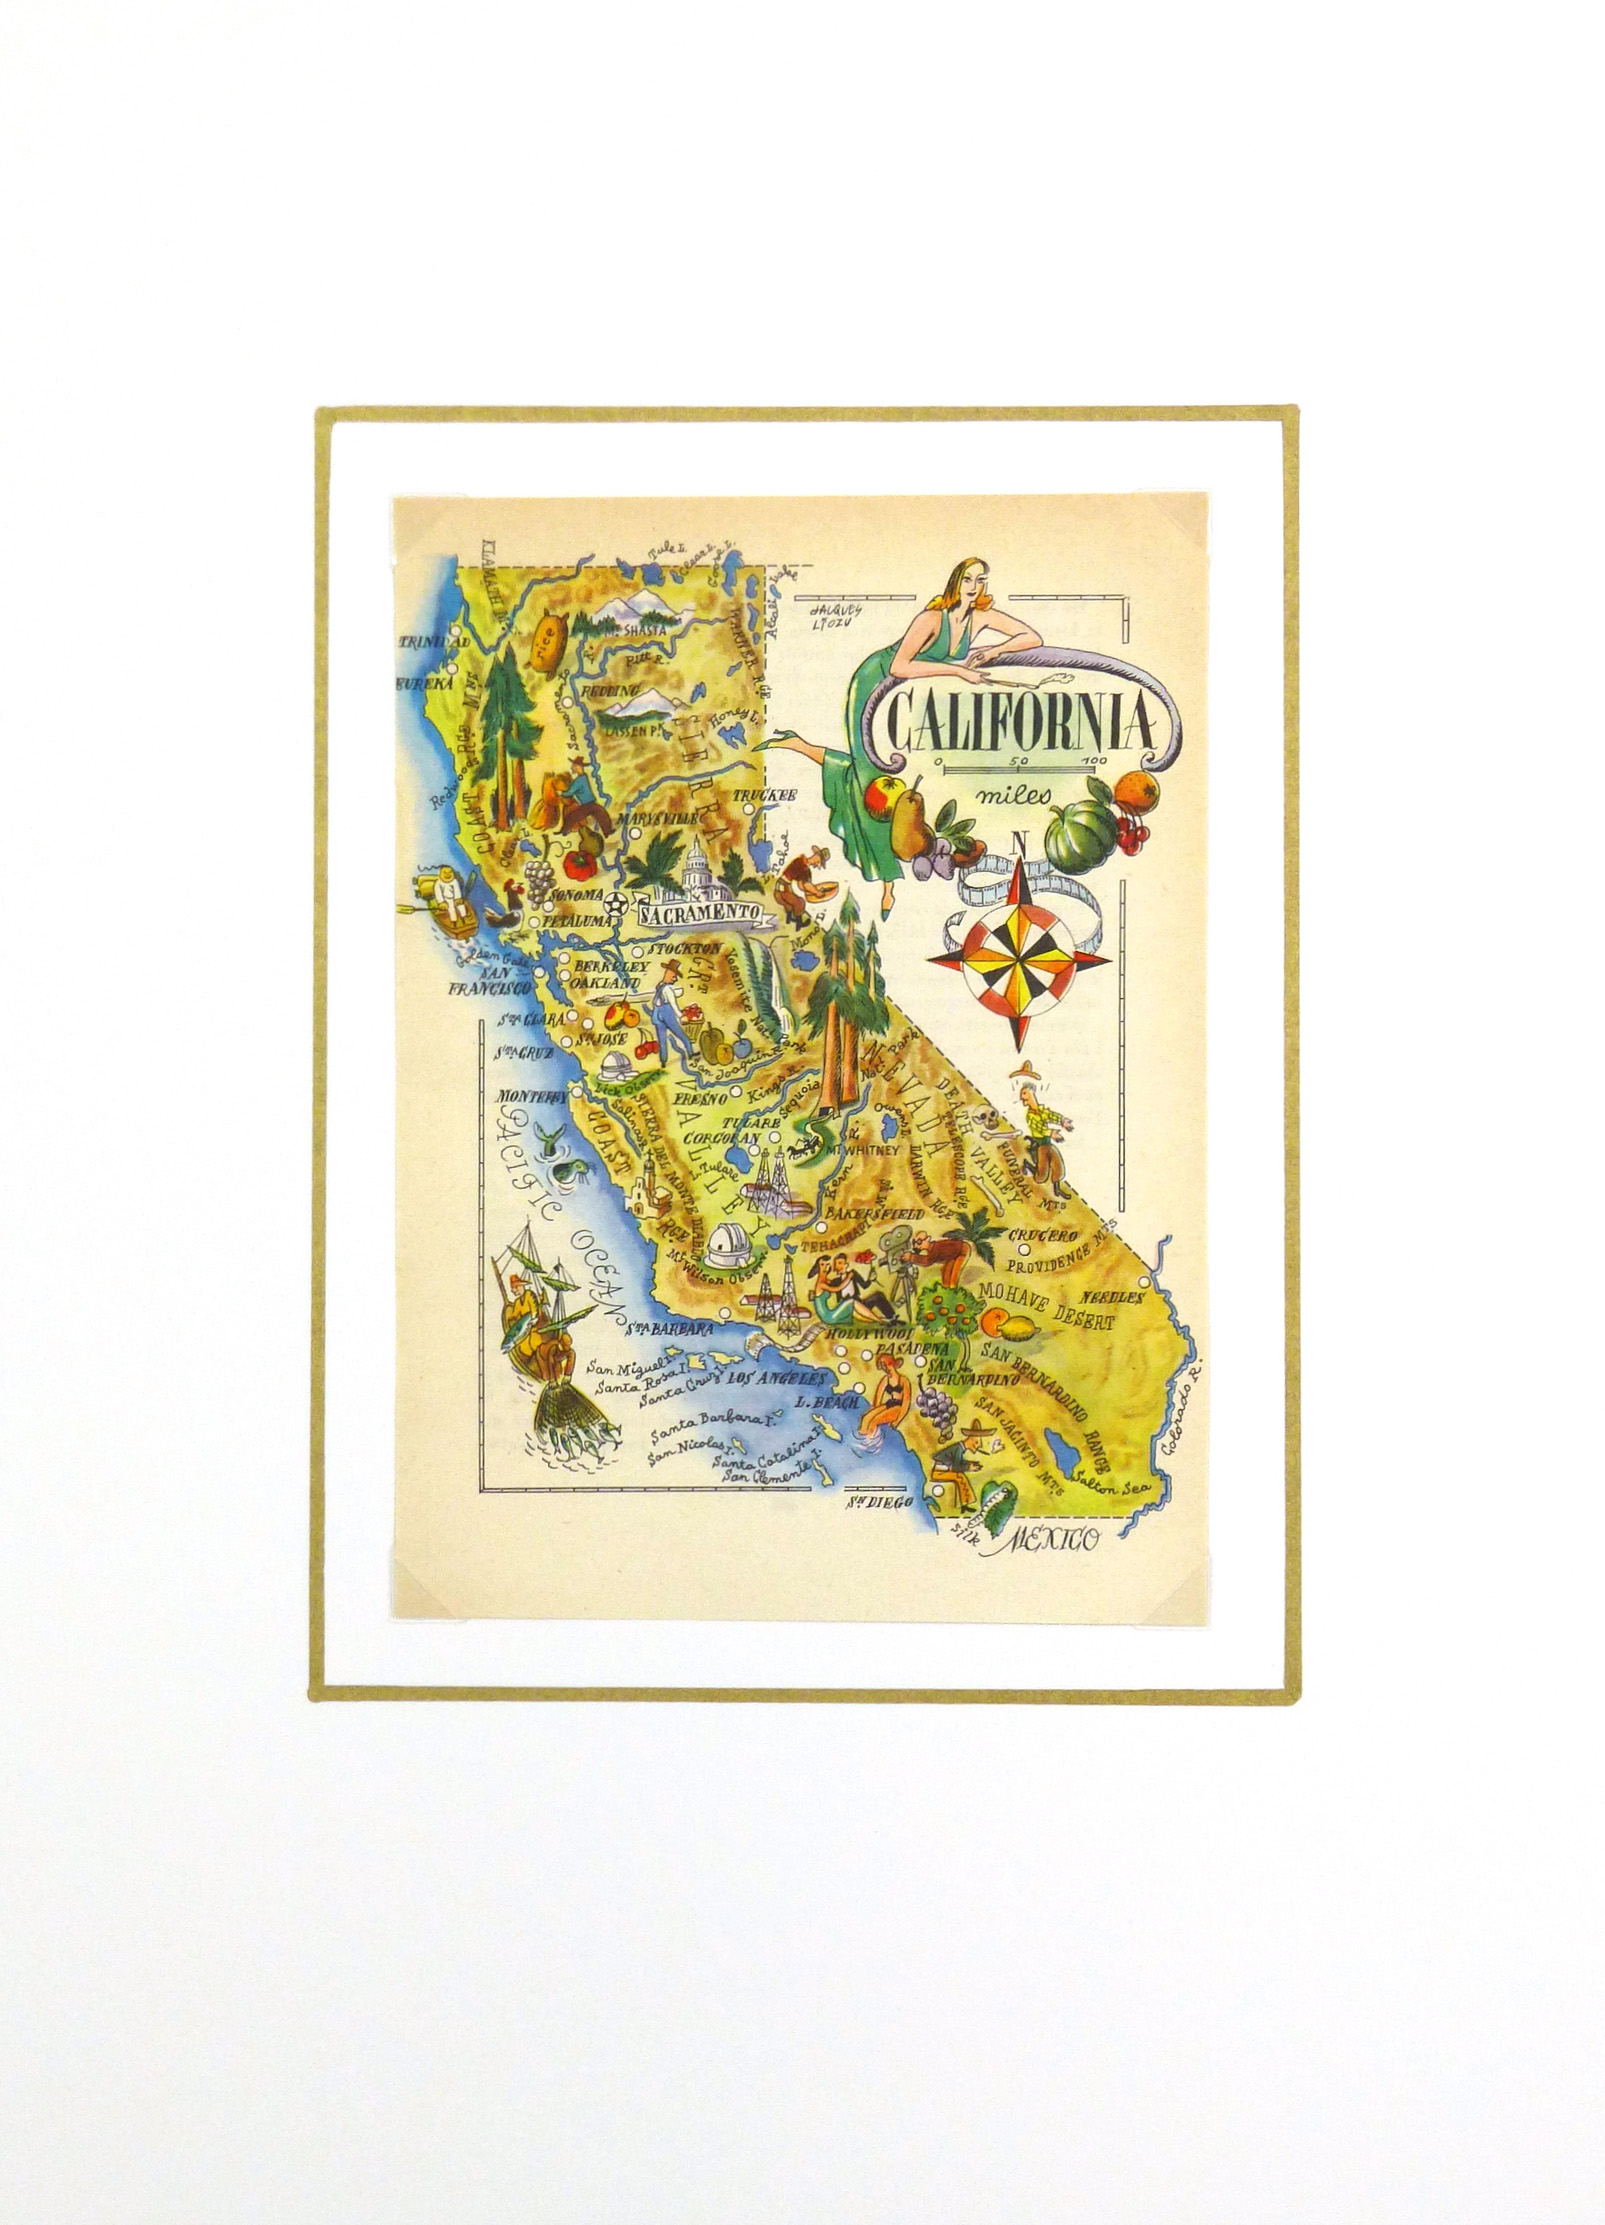 Pictorial Map - California, 1946-matted-6249K